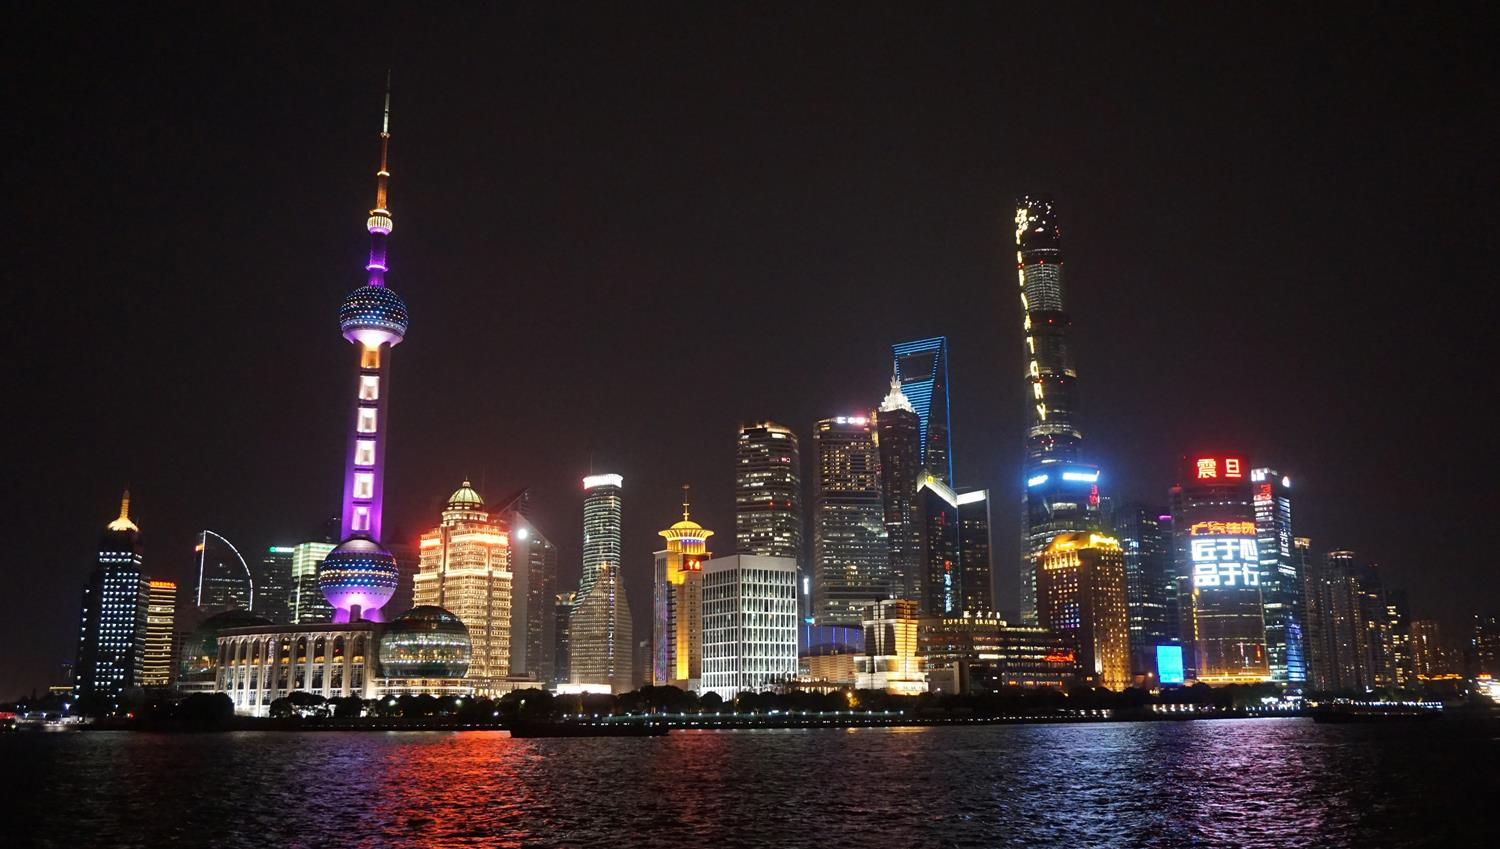 Shanghai's skyline in the dark